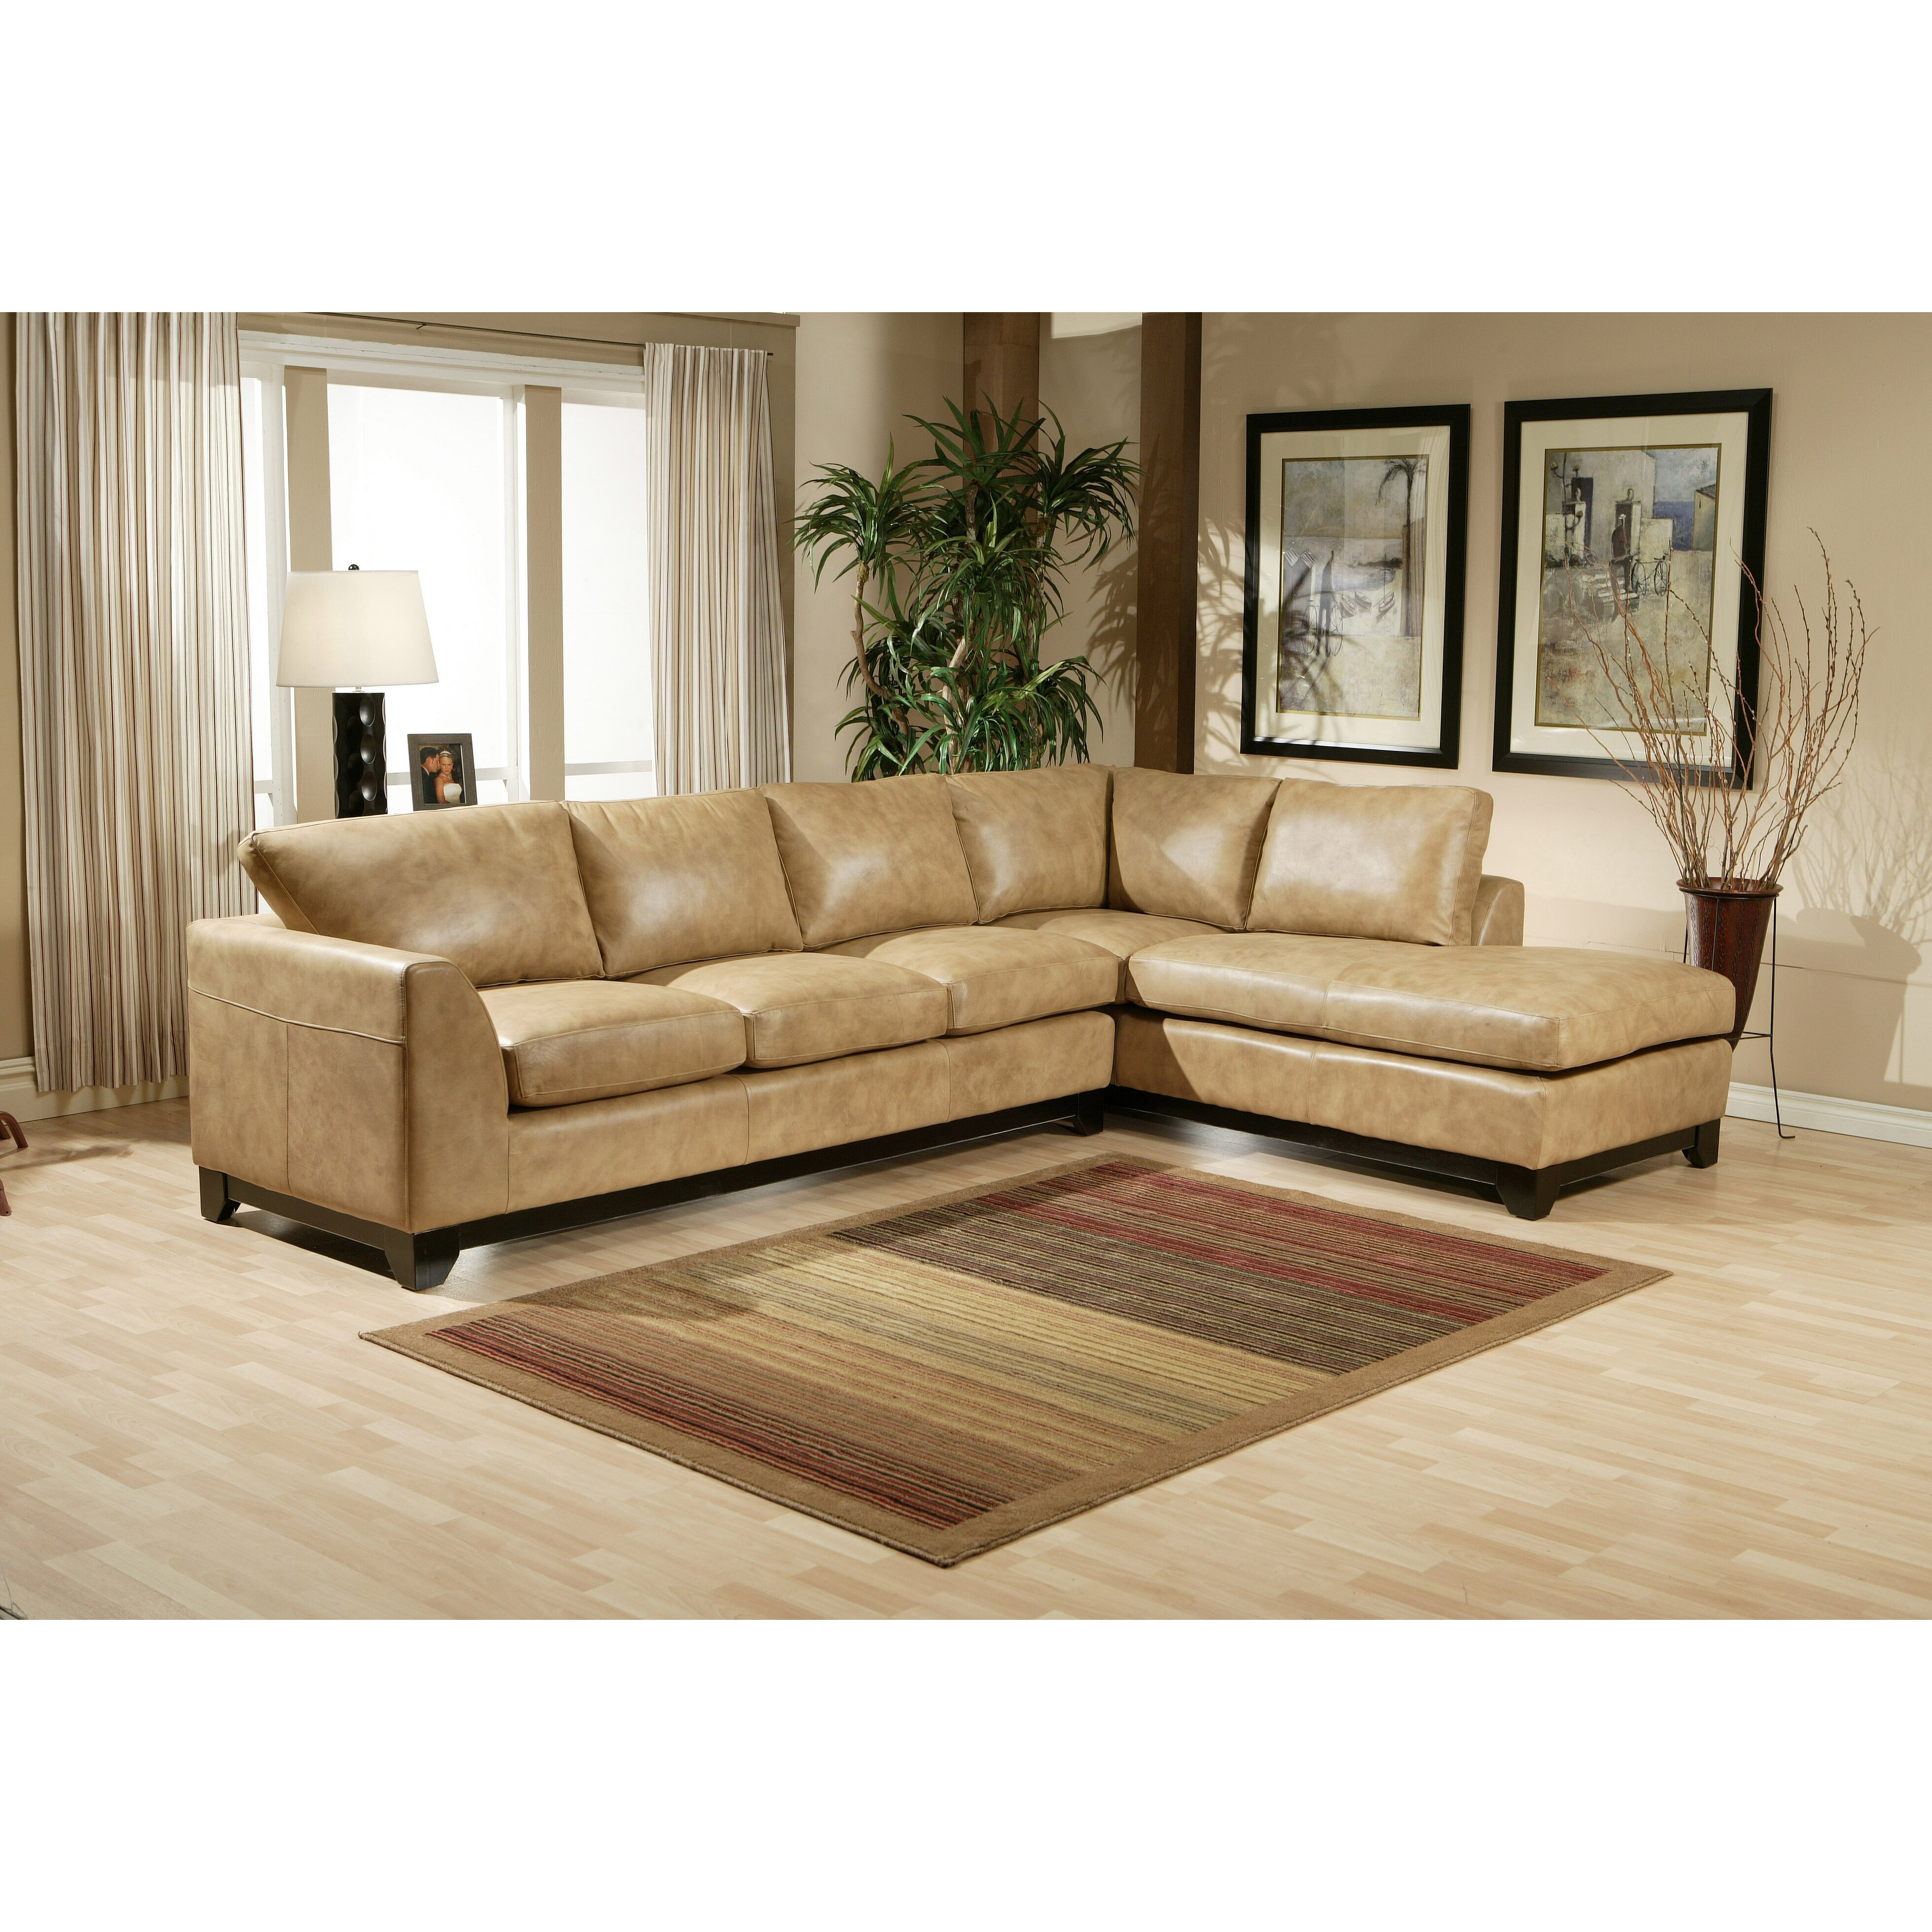 omnia leather city sleek sectional wayfair. Black Bedroom Furniture Sets. Home Design Ideas